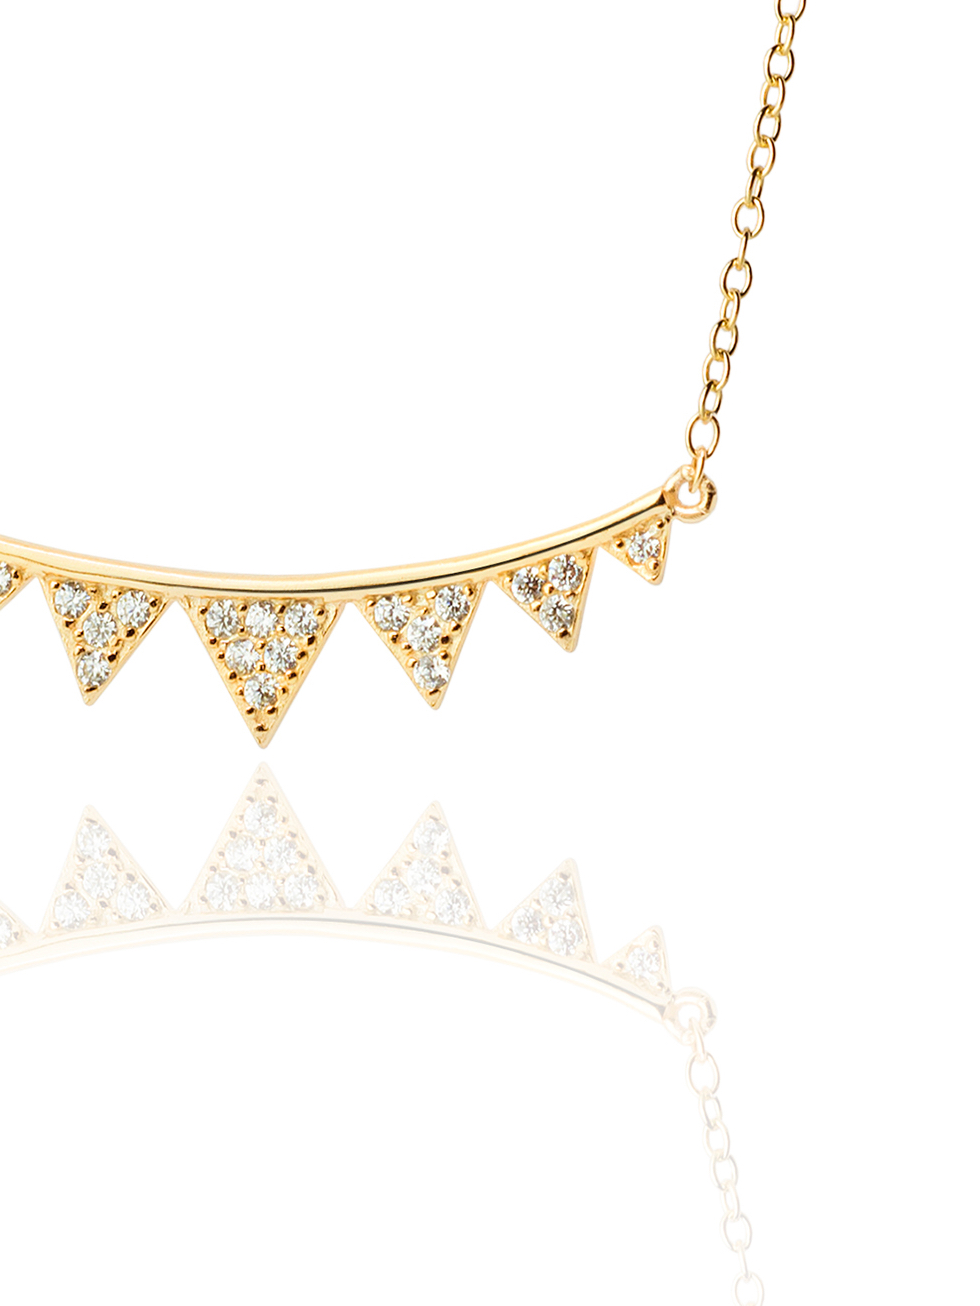 Collar lungersee gold